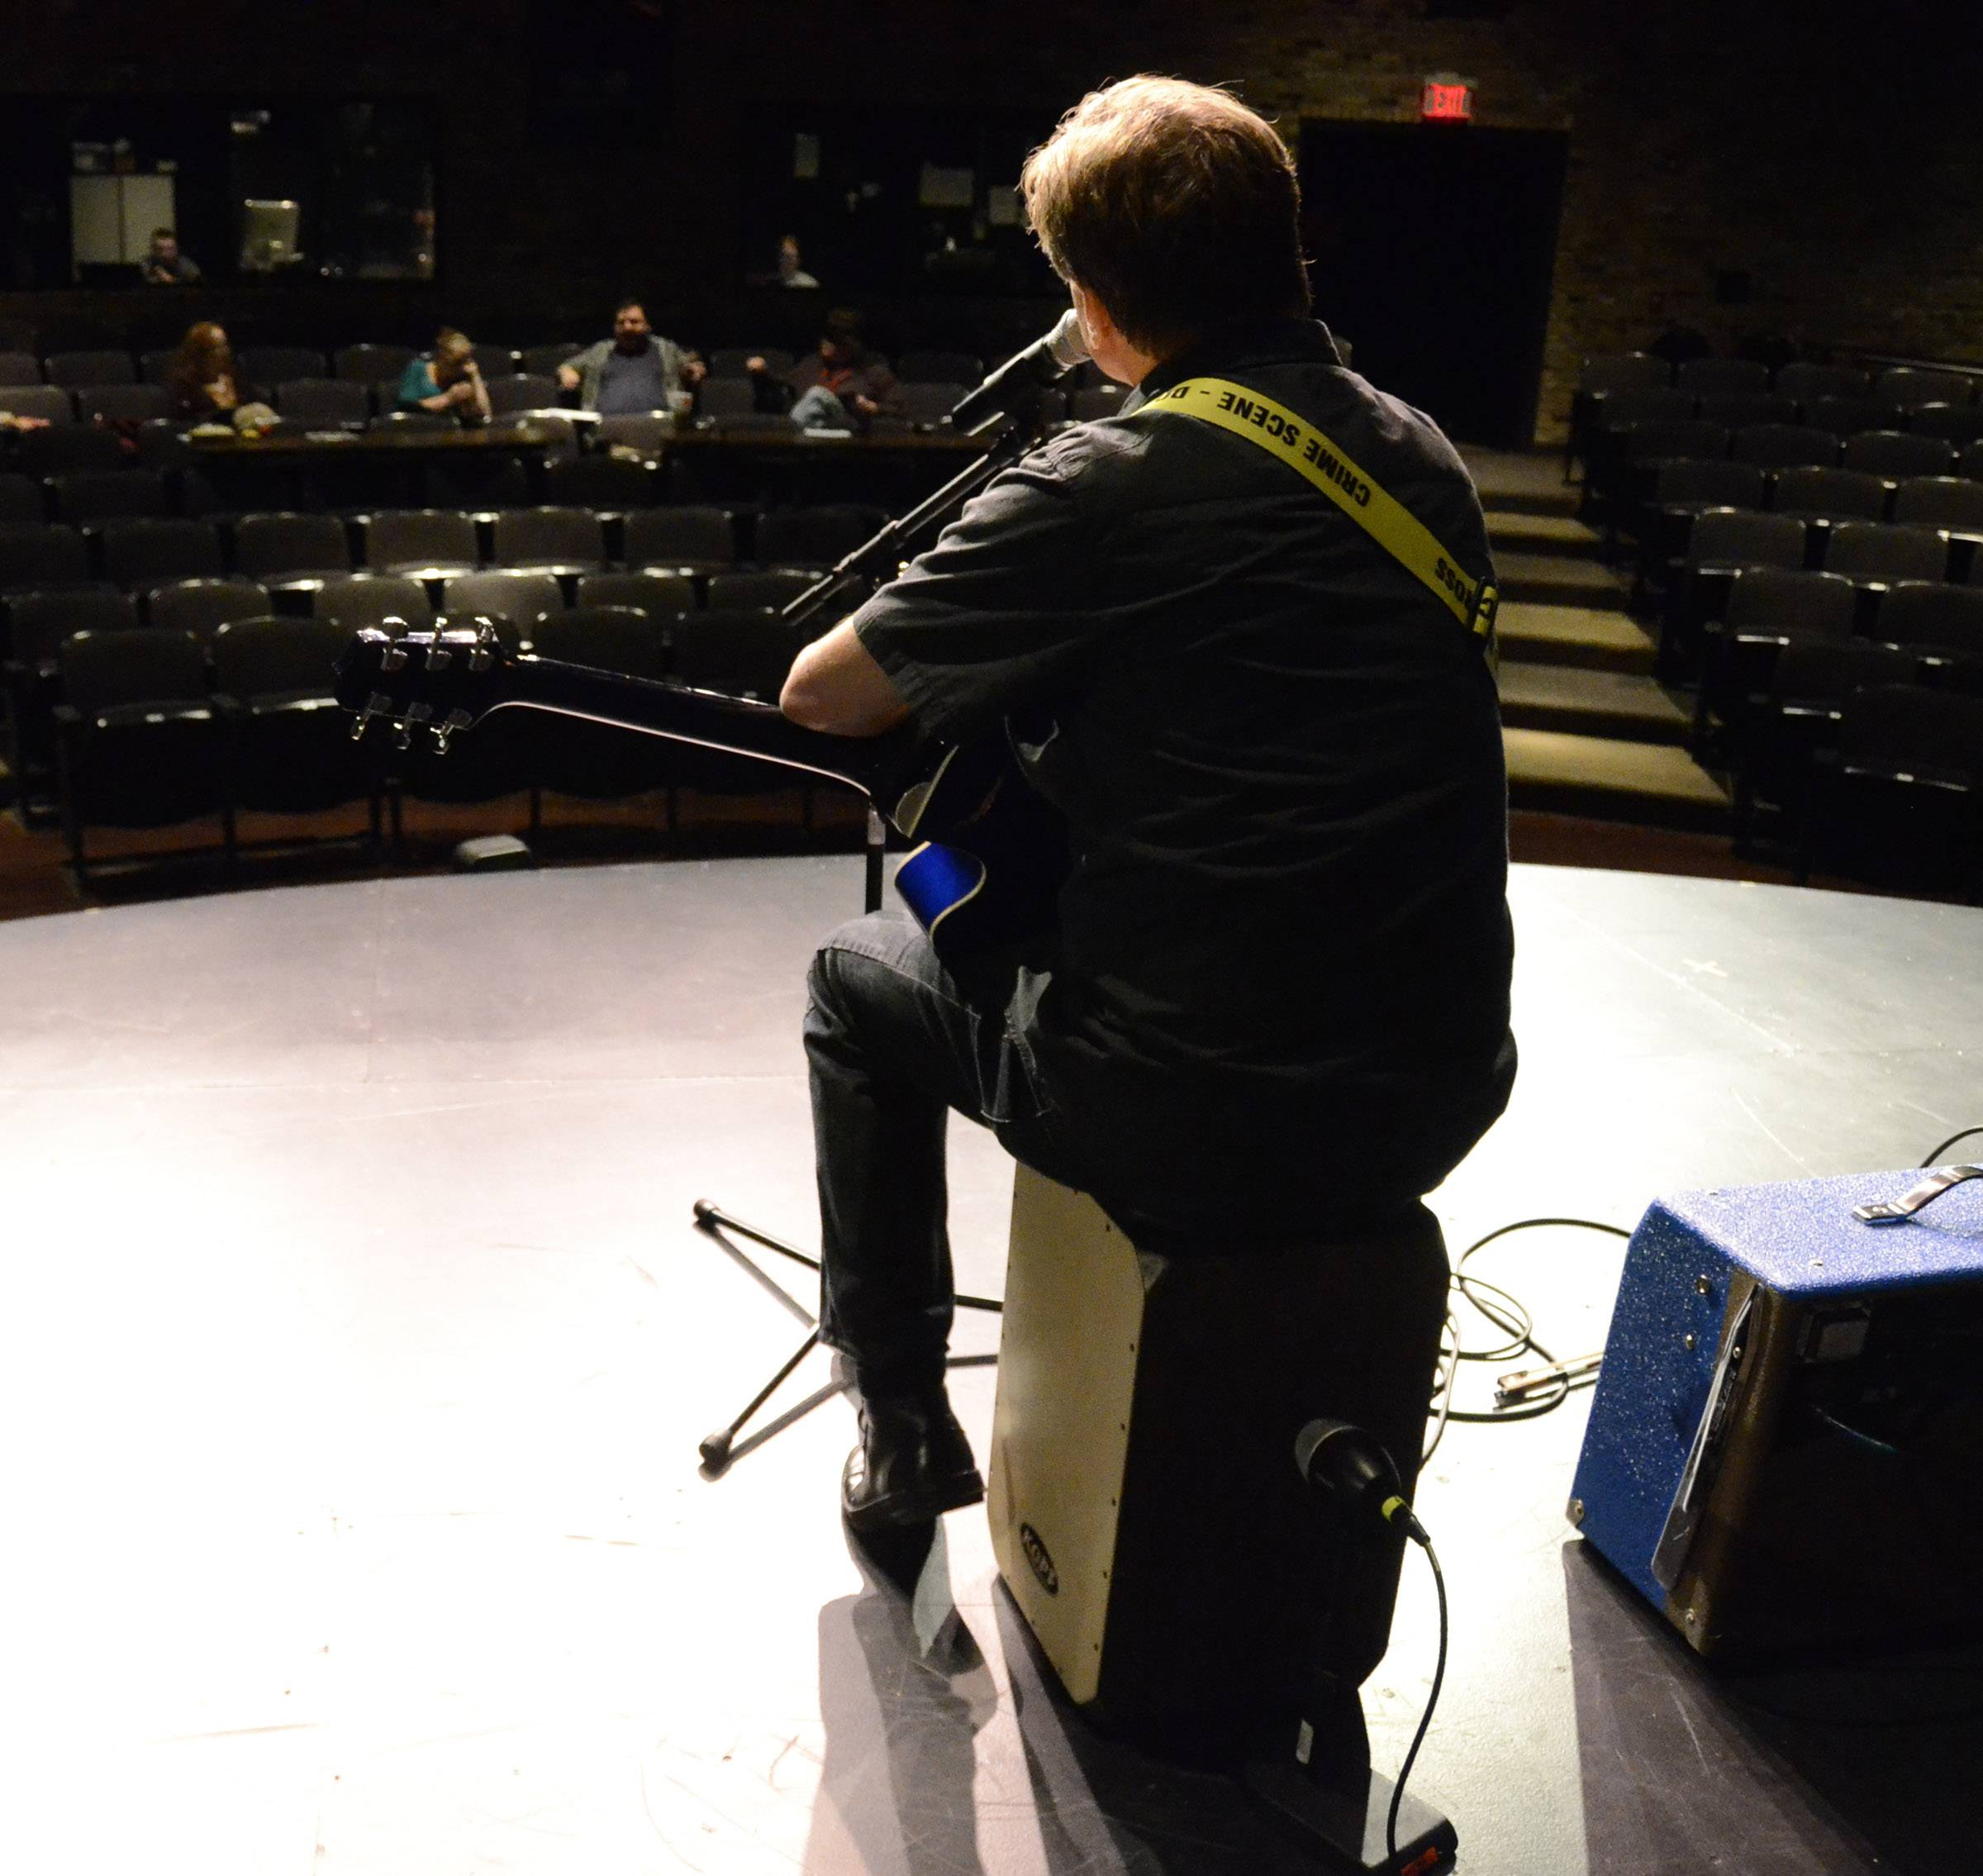 Wesley Kochan of Bartlett listens to judge comments after auditioning Friday for Suburban Chicago's Got Talent at the Metropolis Performing Arts Centre.